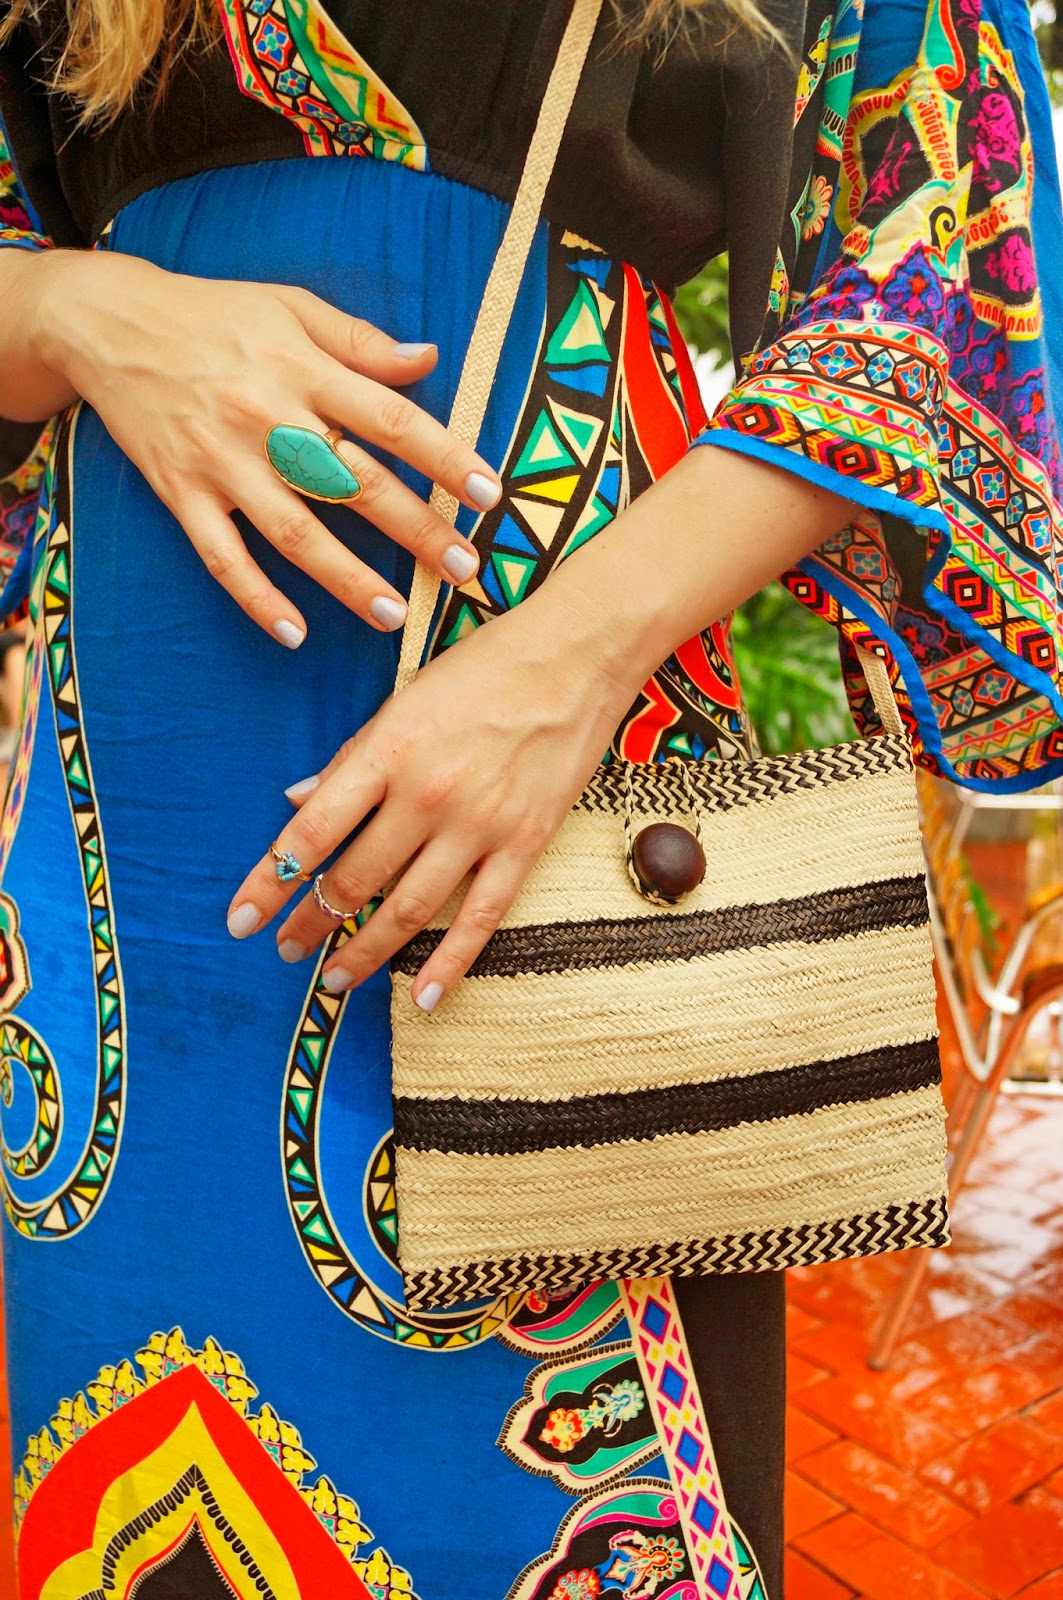 Cute Bag by Shop-Panama inspired by the Pintao hat, Panama's national hat